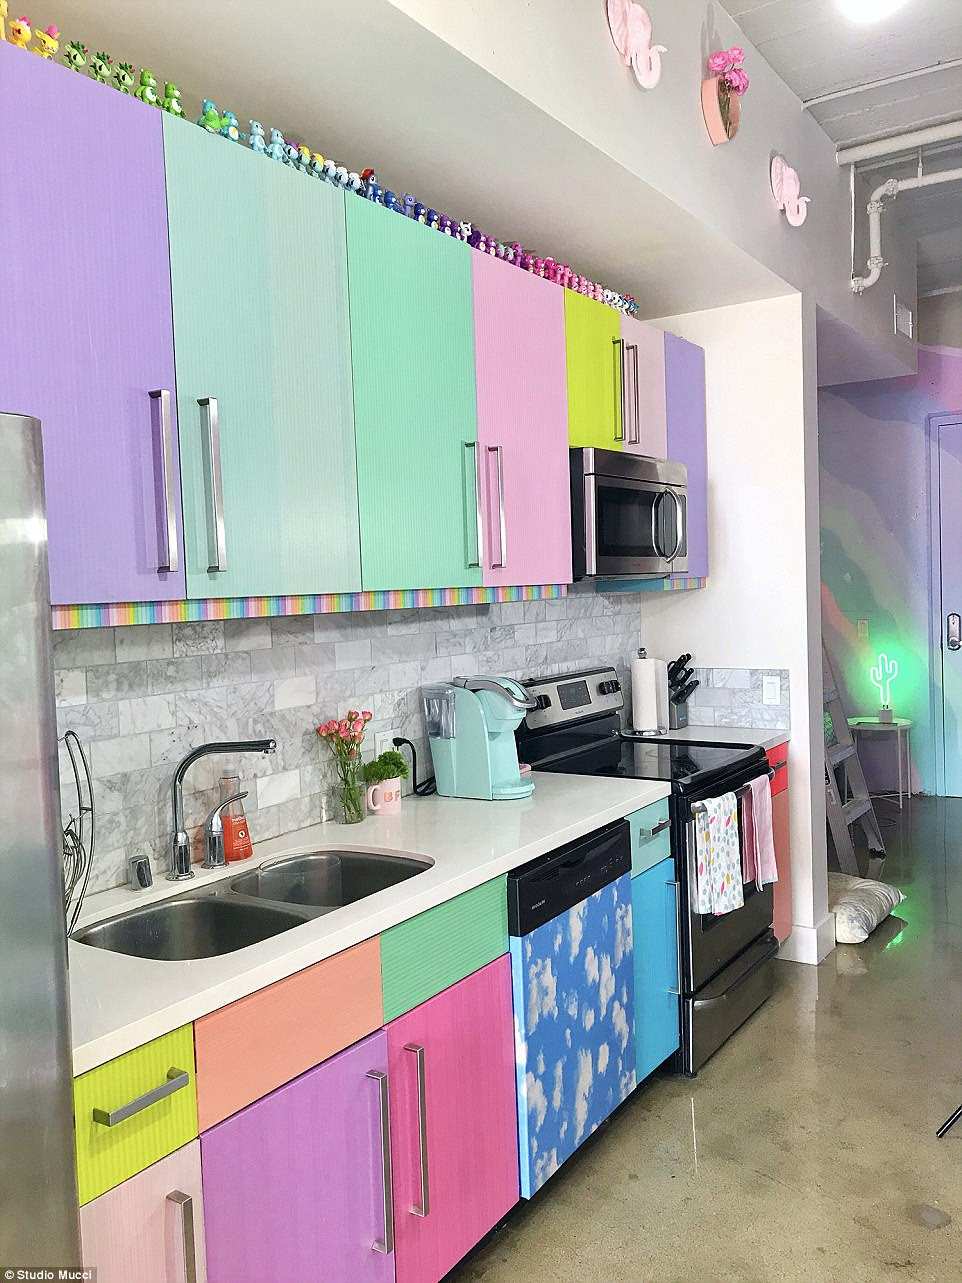 Internet goes crazy for for rainbow-colored apartment ...